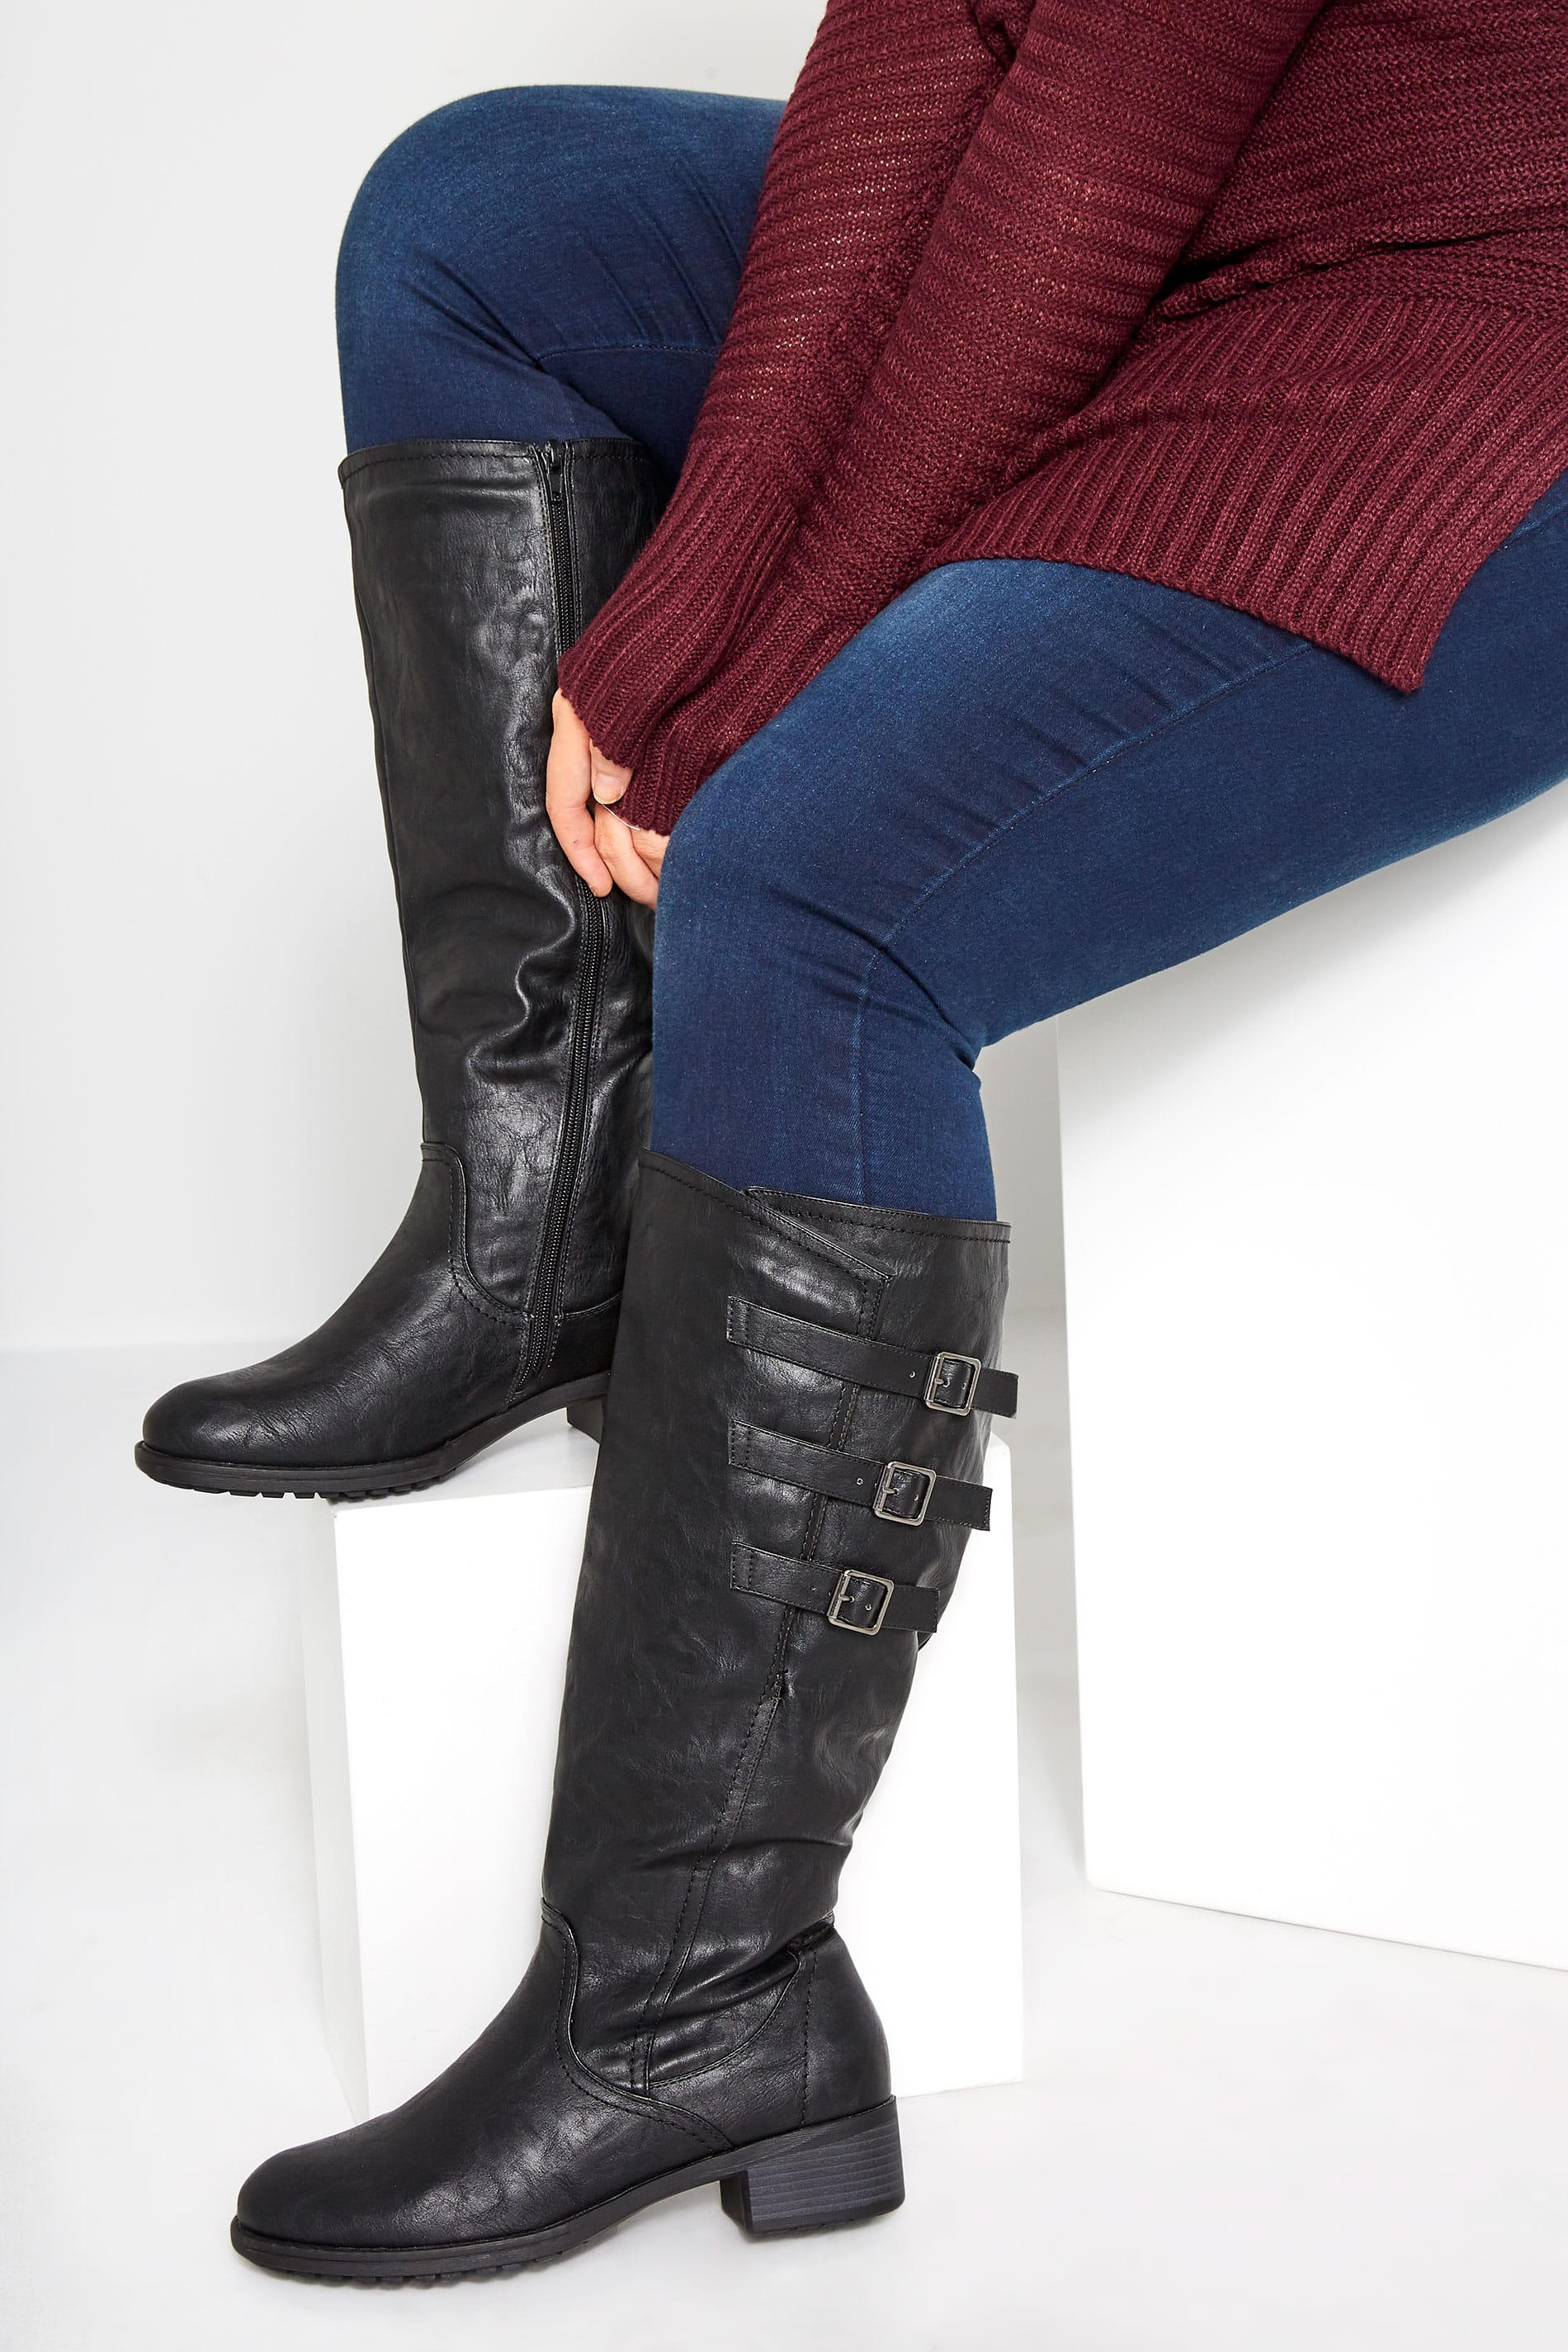 Black Knee High Boots In Extra Wide Fit With Adjustable Straps